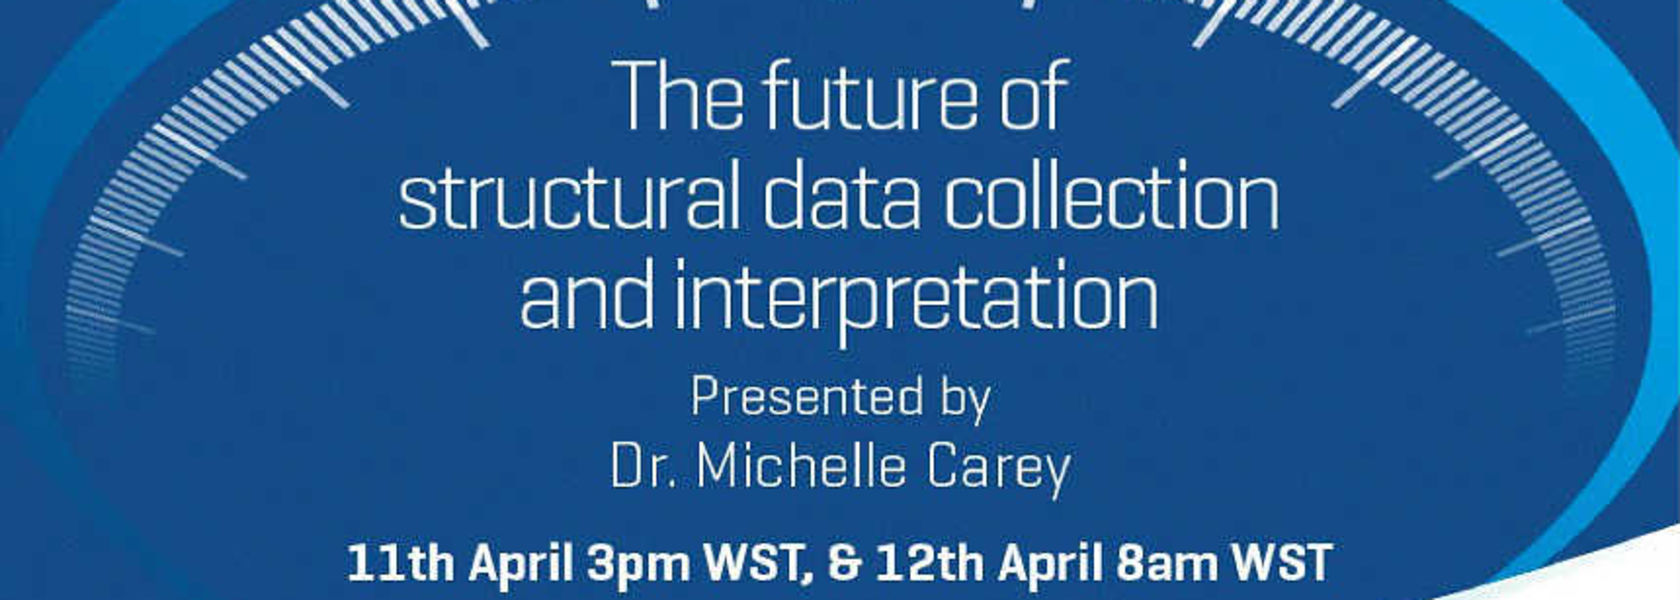 Future of structural data collection and interpretation